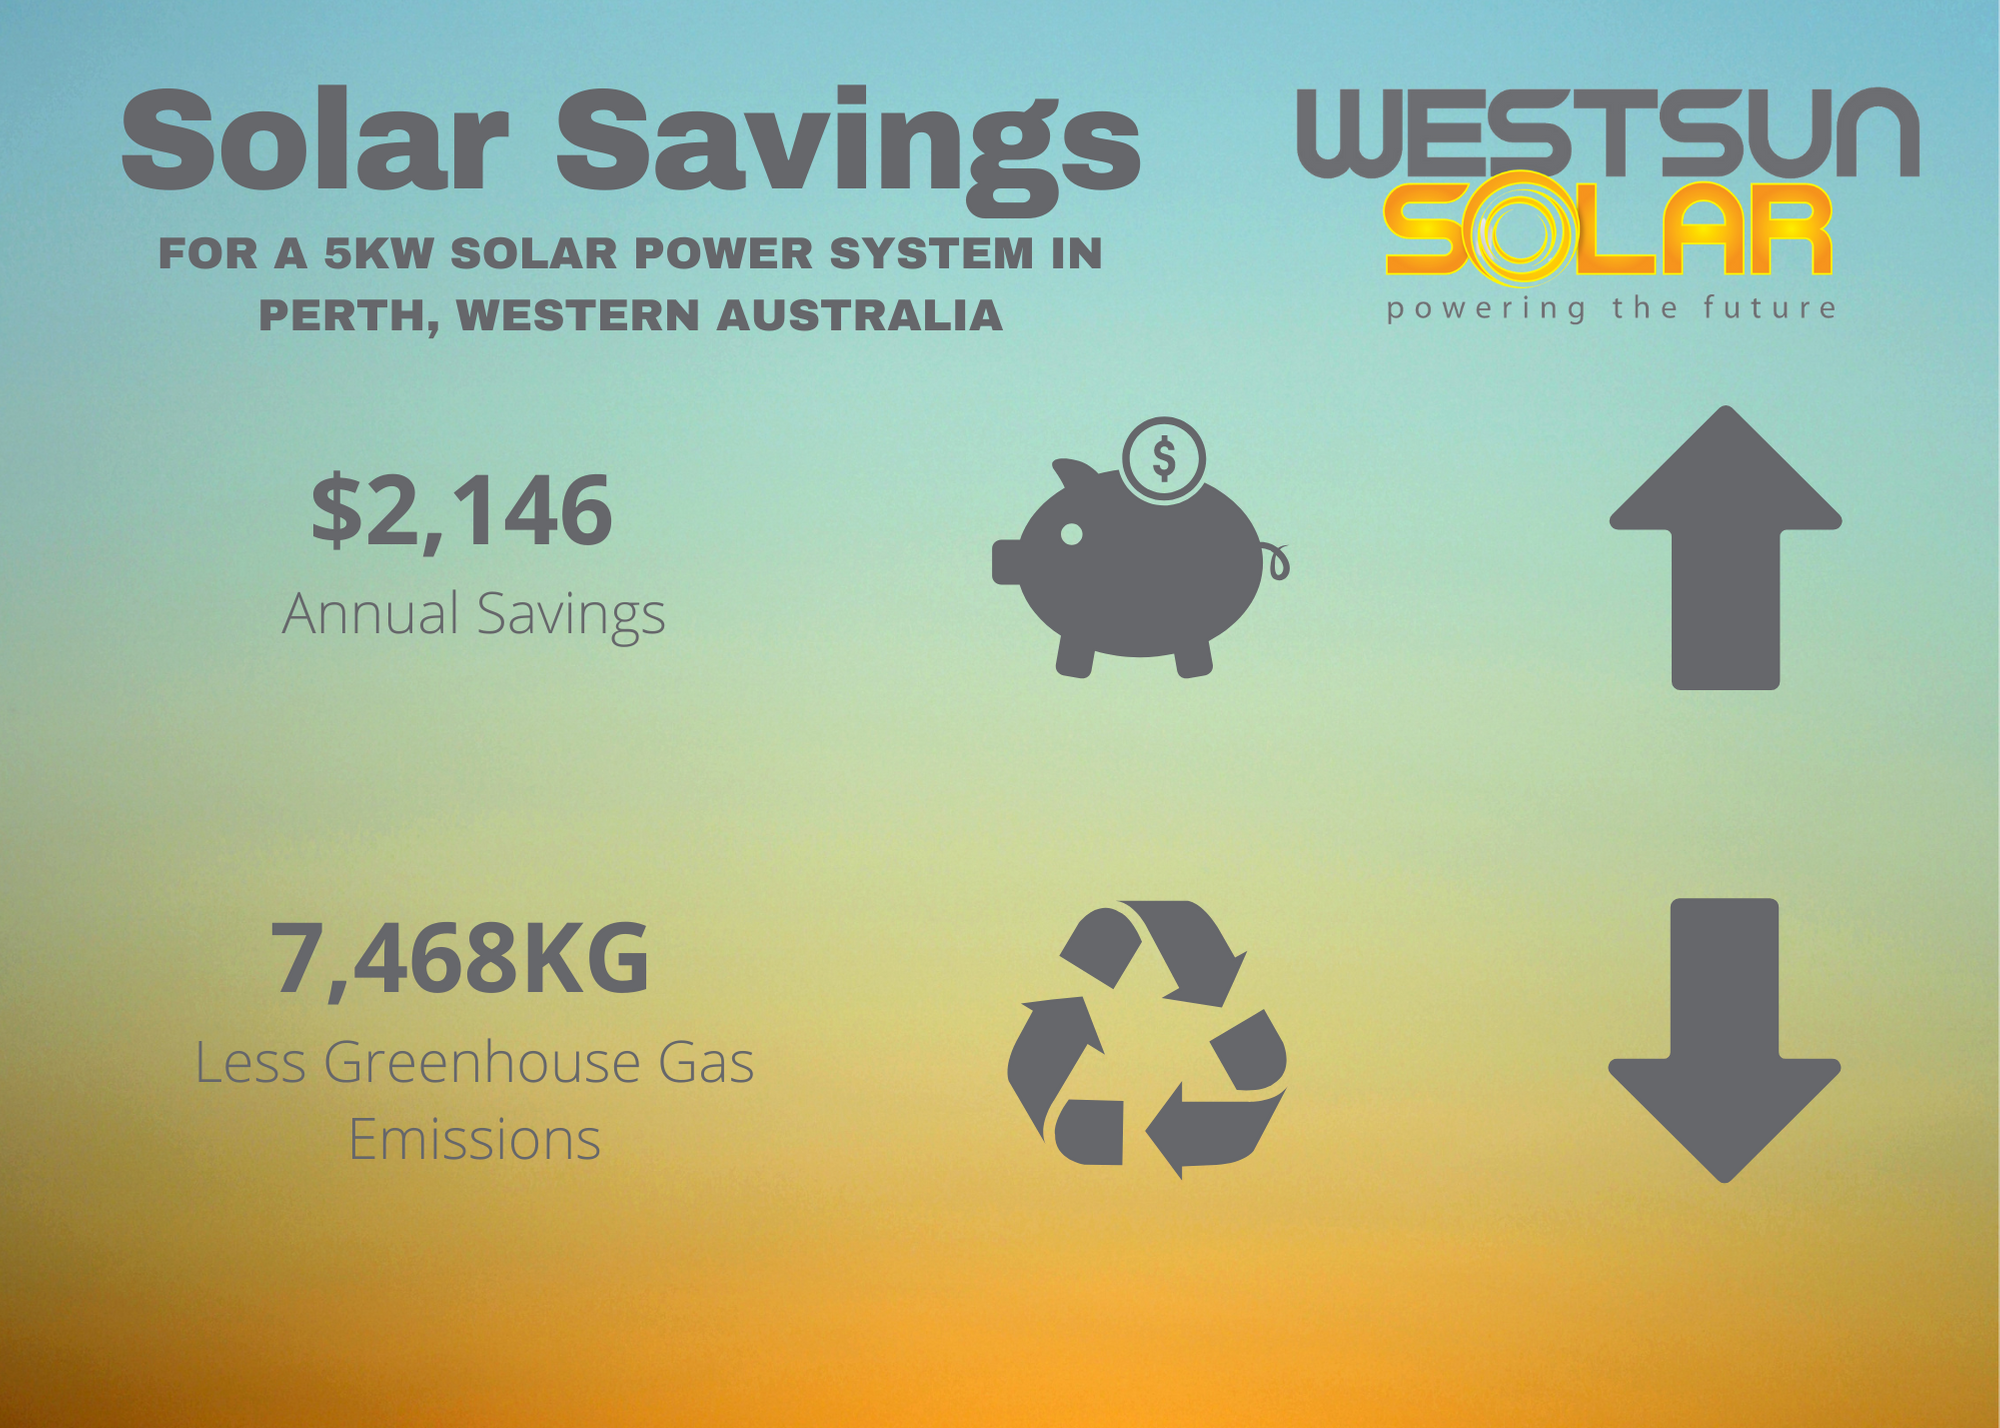 Solar Savings - Benefits of Solar Power